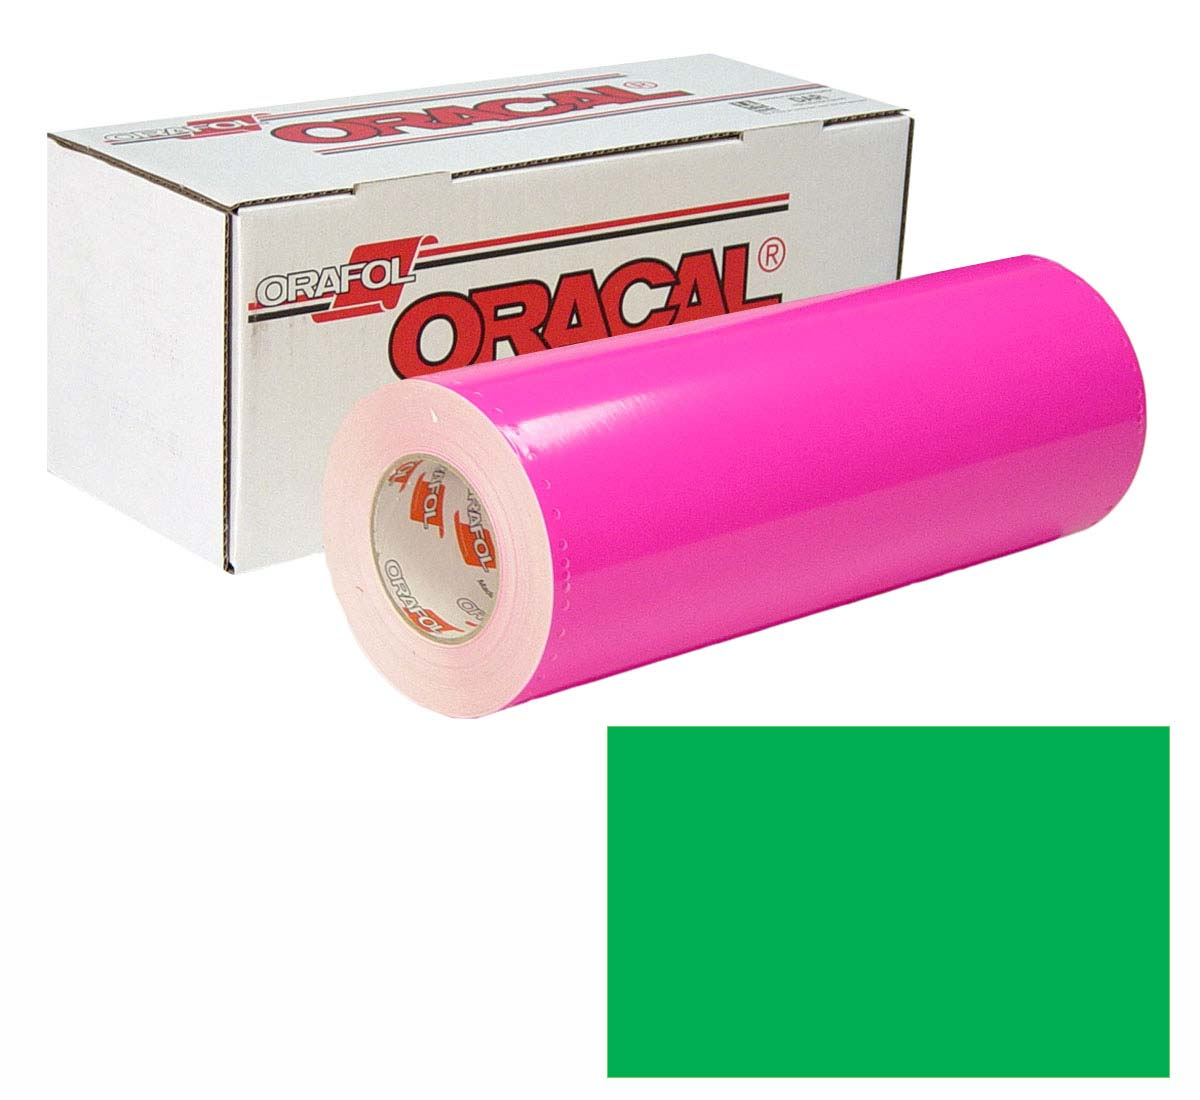 ORACAL 6510 Fluor 15in X 50yd 069 Green